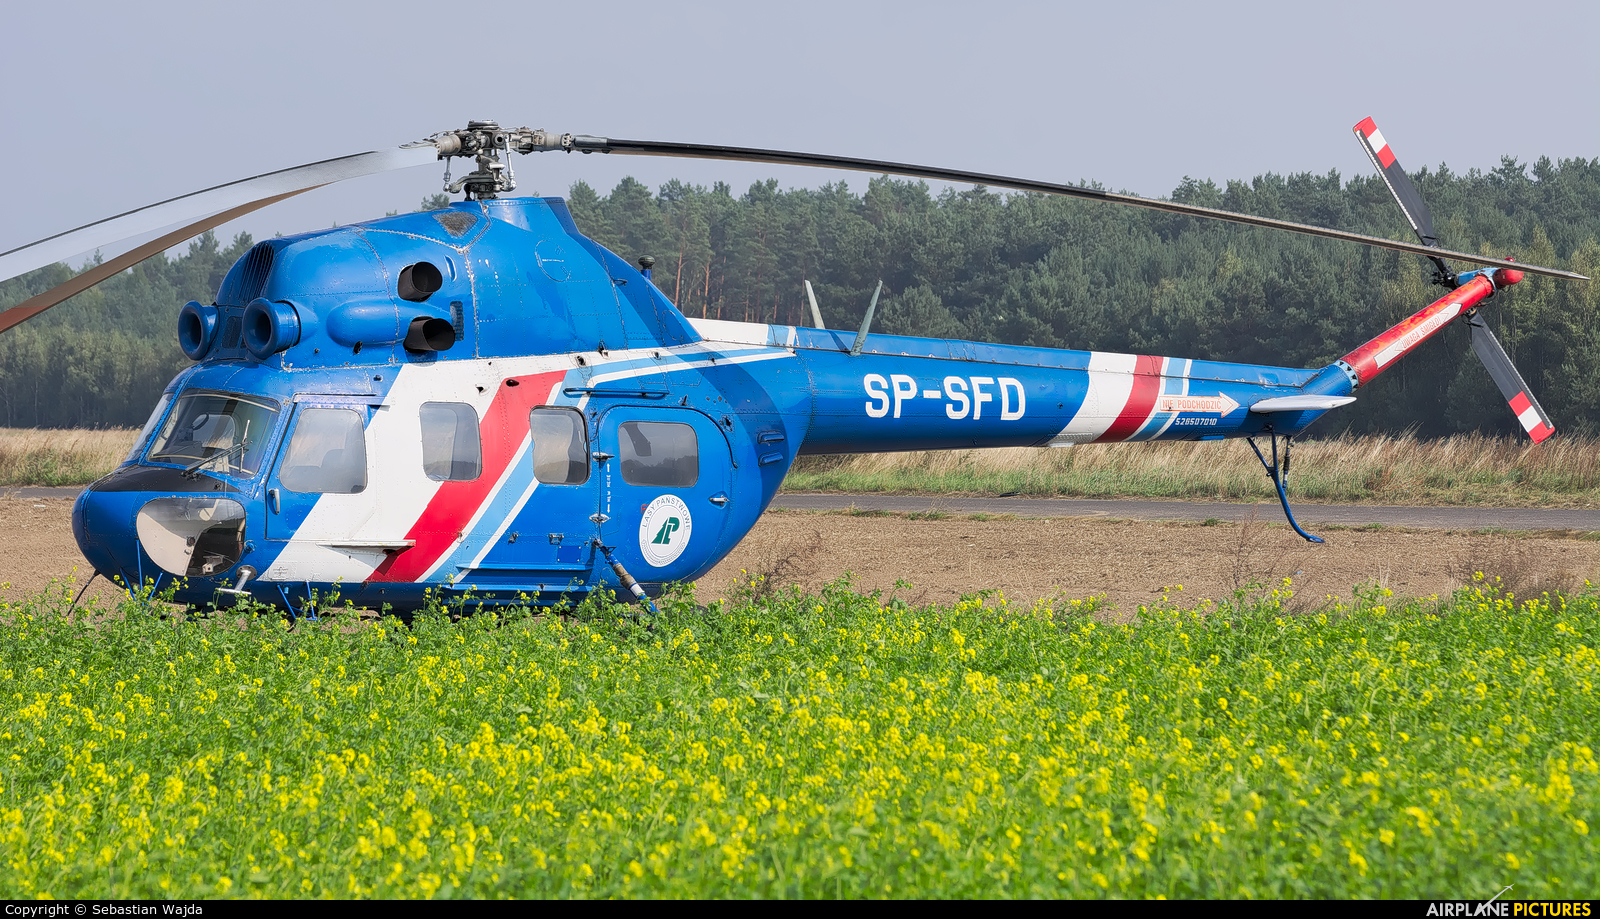 Heliseco SP-SFD aircraft at Off Airport - Poland